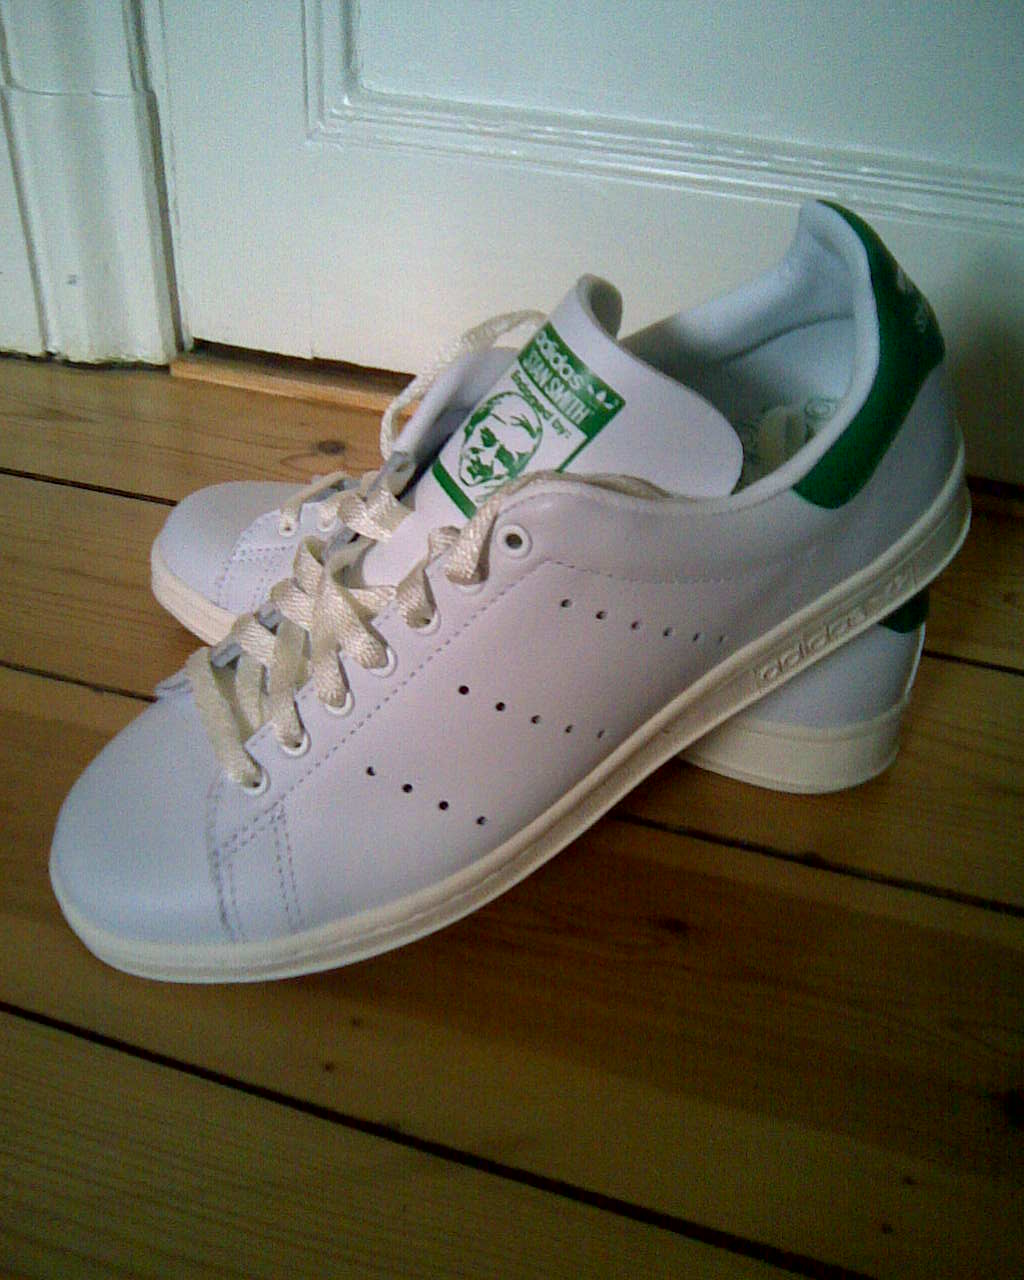 File:Adidas Stan Smith 80s.jpg